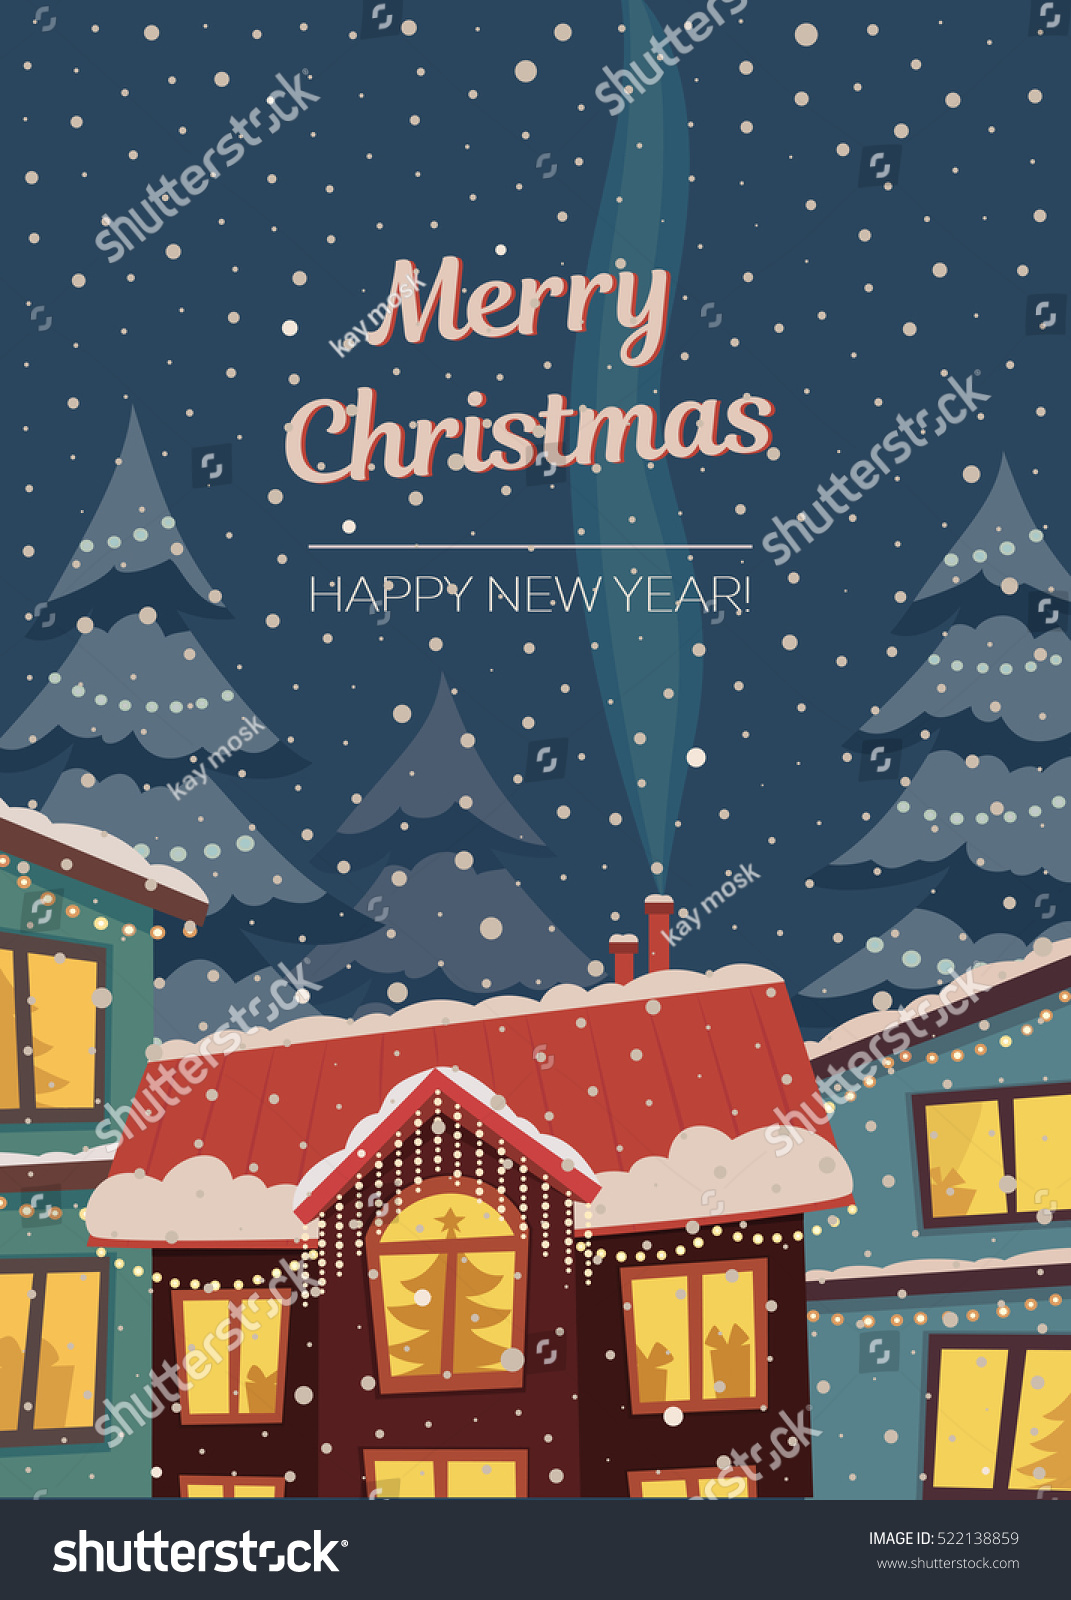 Merry Christmas Vector Vertical Card Subdued Stock Vector (Royalty ...